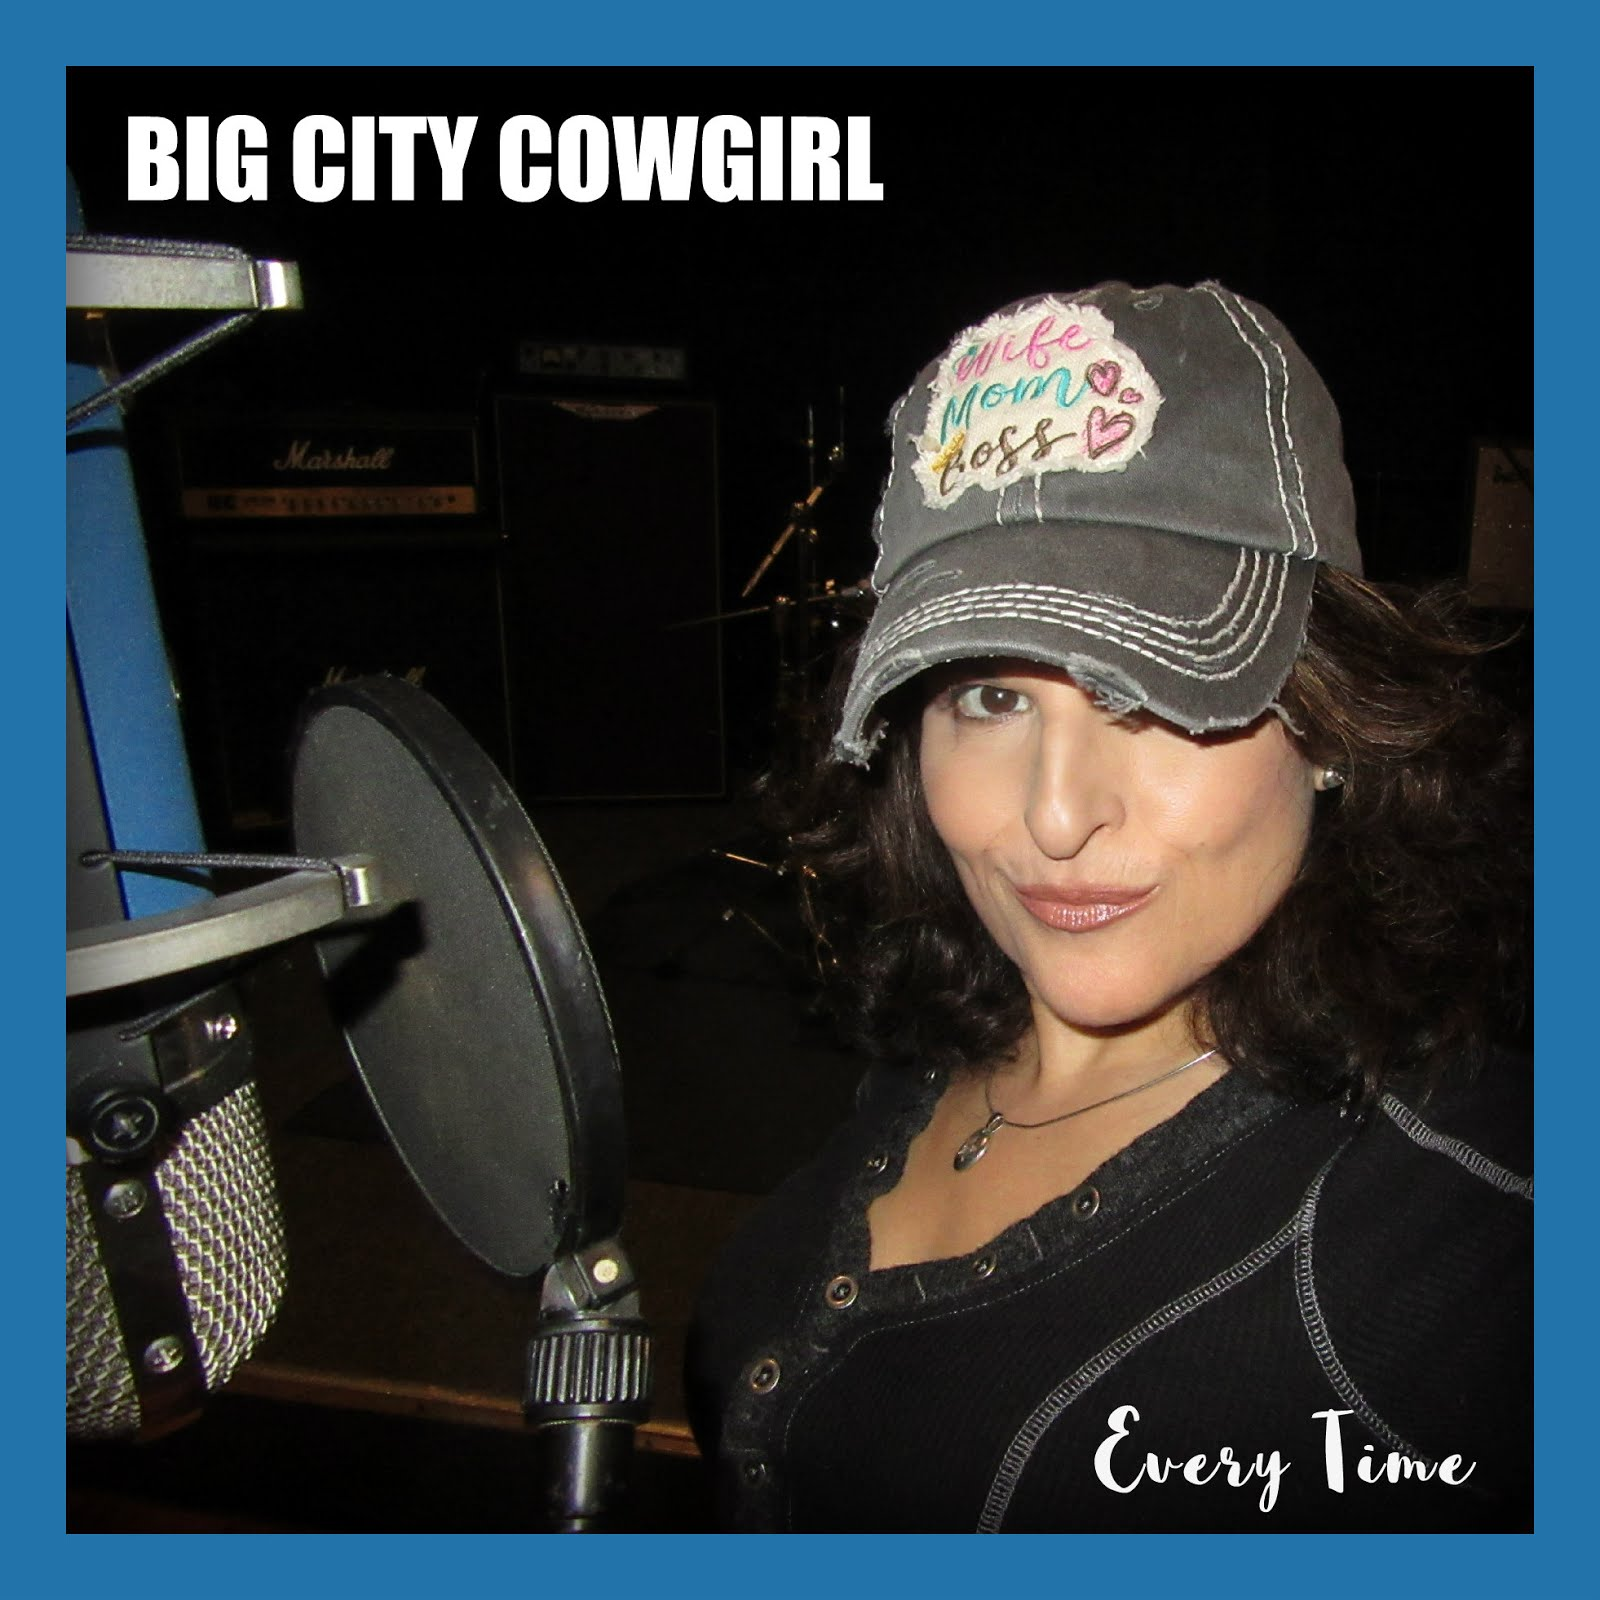 Big City Cowgirl ''Every Time''